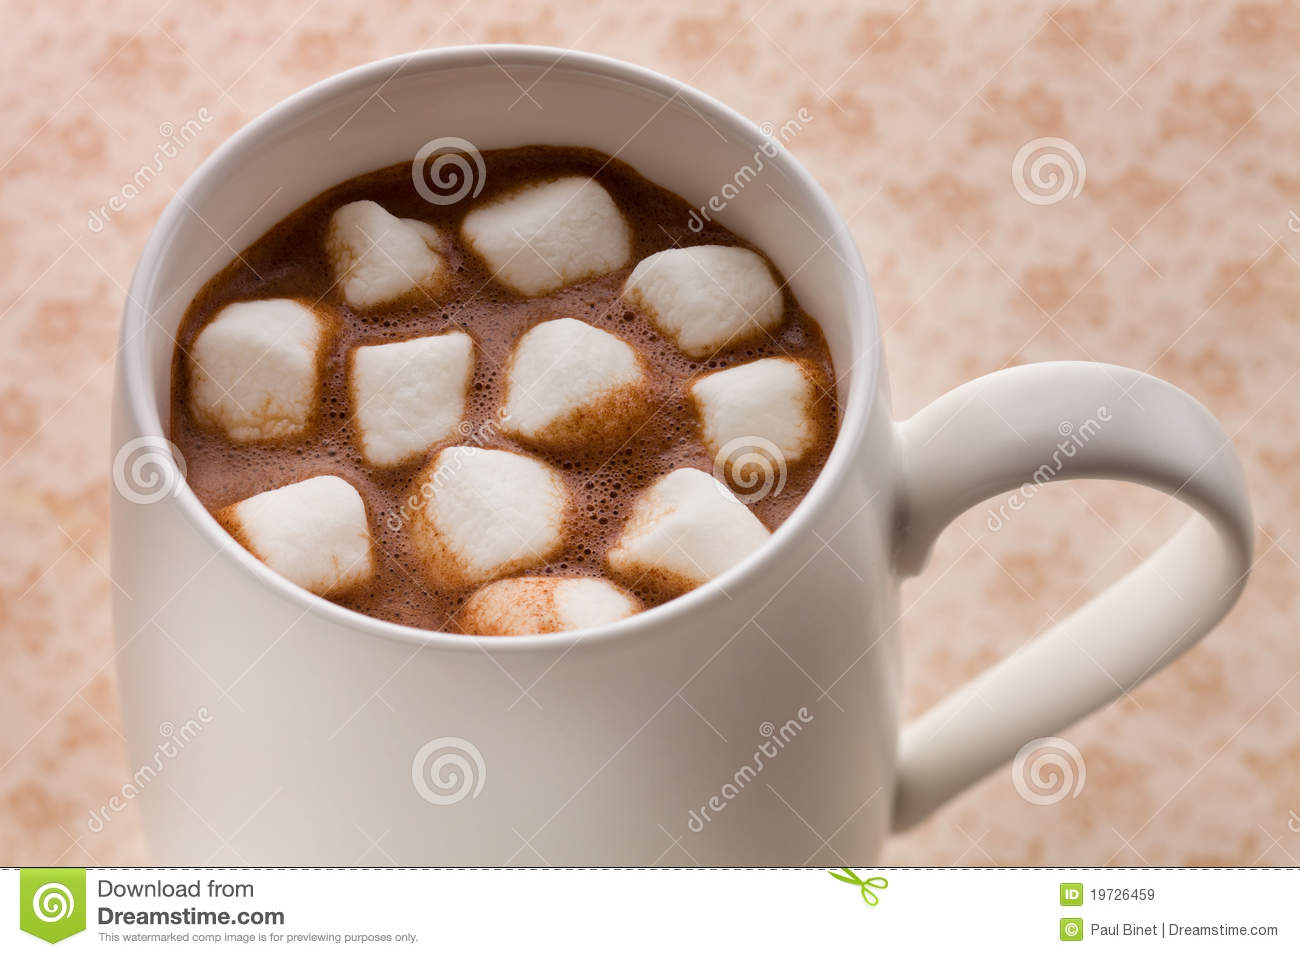 Hot chocolate drink from above on a brown background with marshmallow.